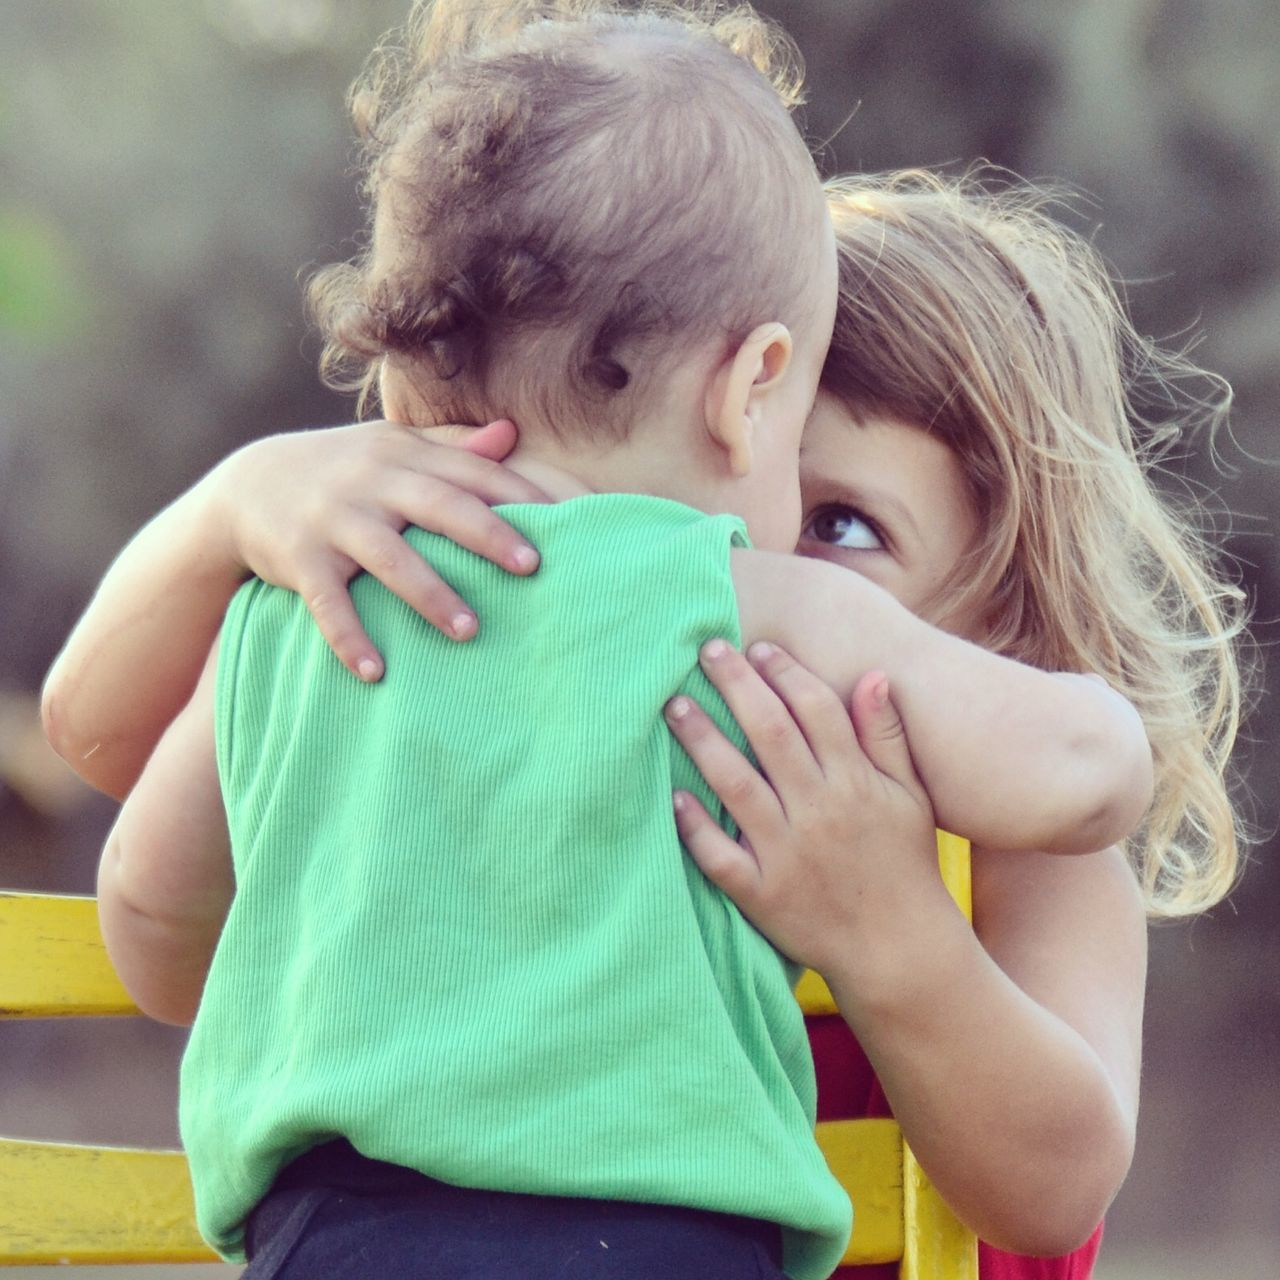 childhood, togetherness, love, real people, bonding, innocence, family with one child, embracing, casual clothing, lifestyles, family, girls, day, cute, leisure activity, hugging, looking at camera, elementary age, boys, outdoors, care, young women, portrait, close-up, blond hair, tree, young adult, people